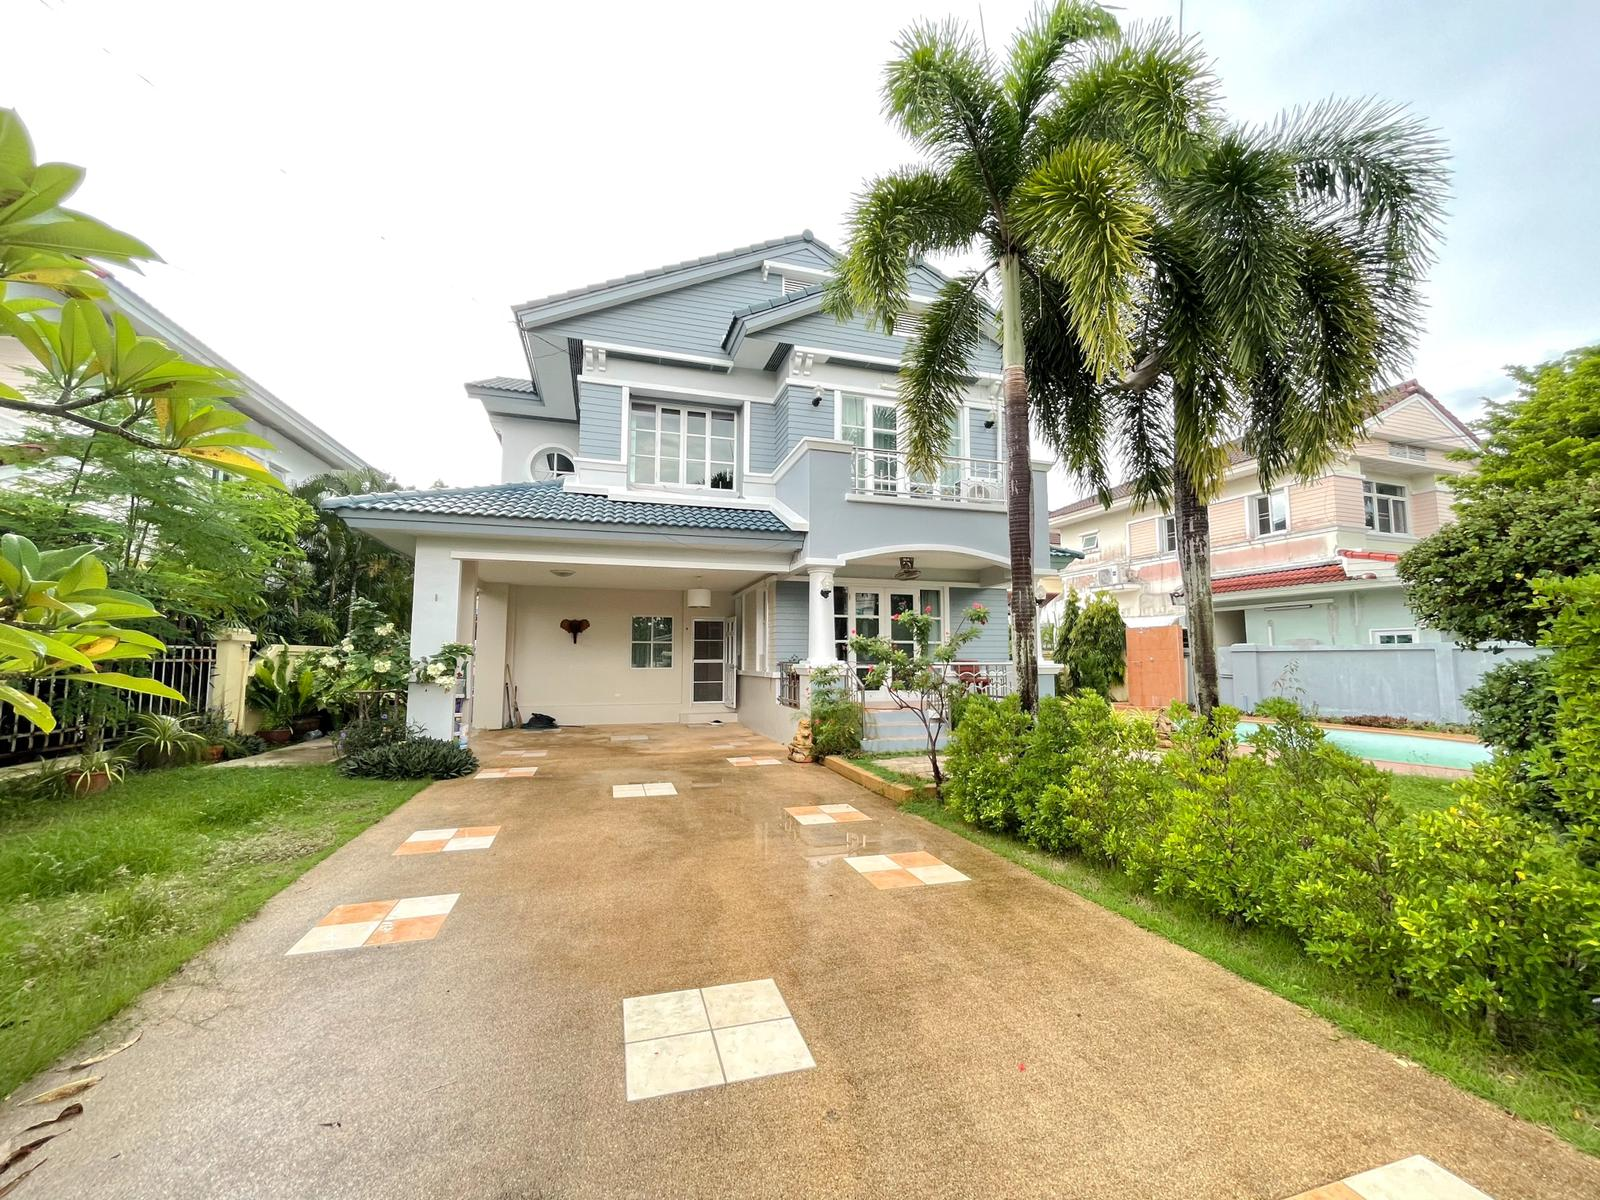 House with private swimming pool for sale ID CH-054